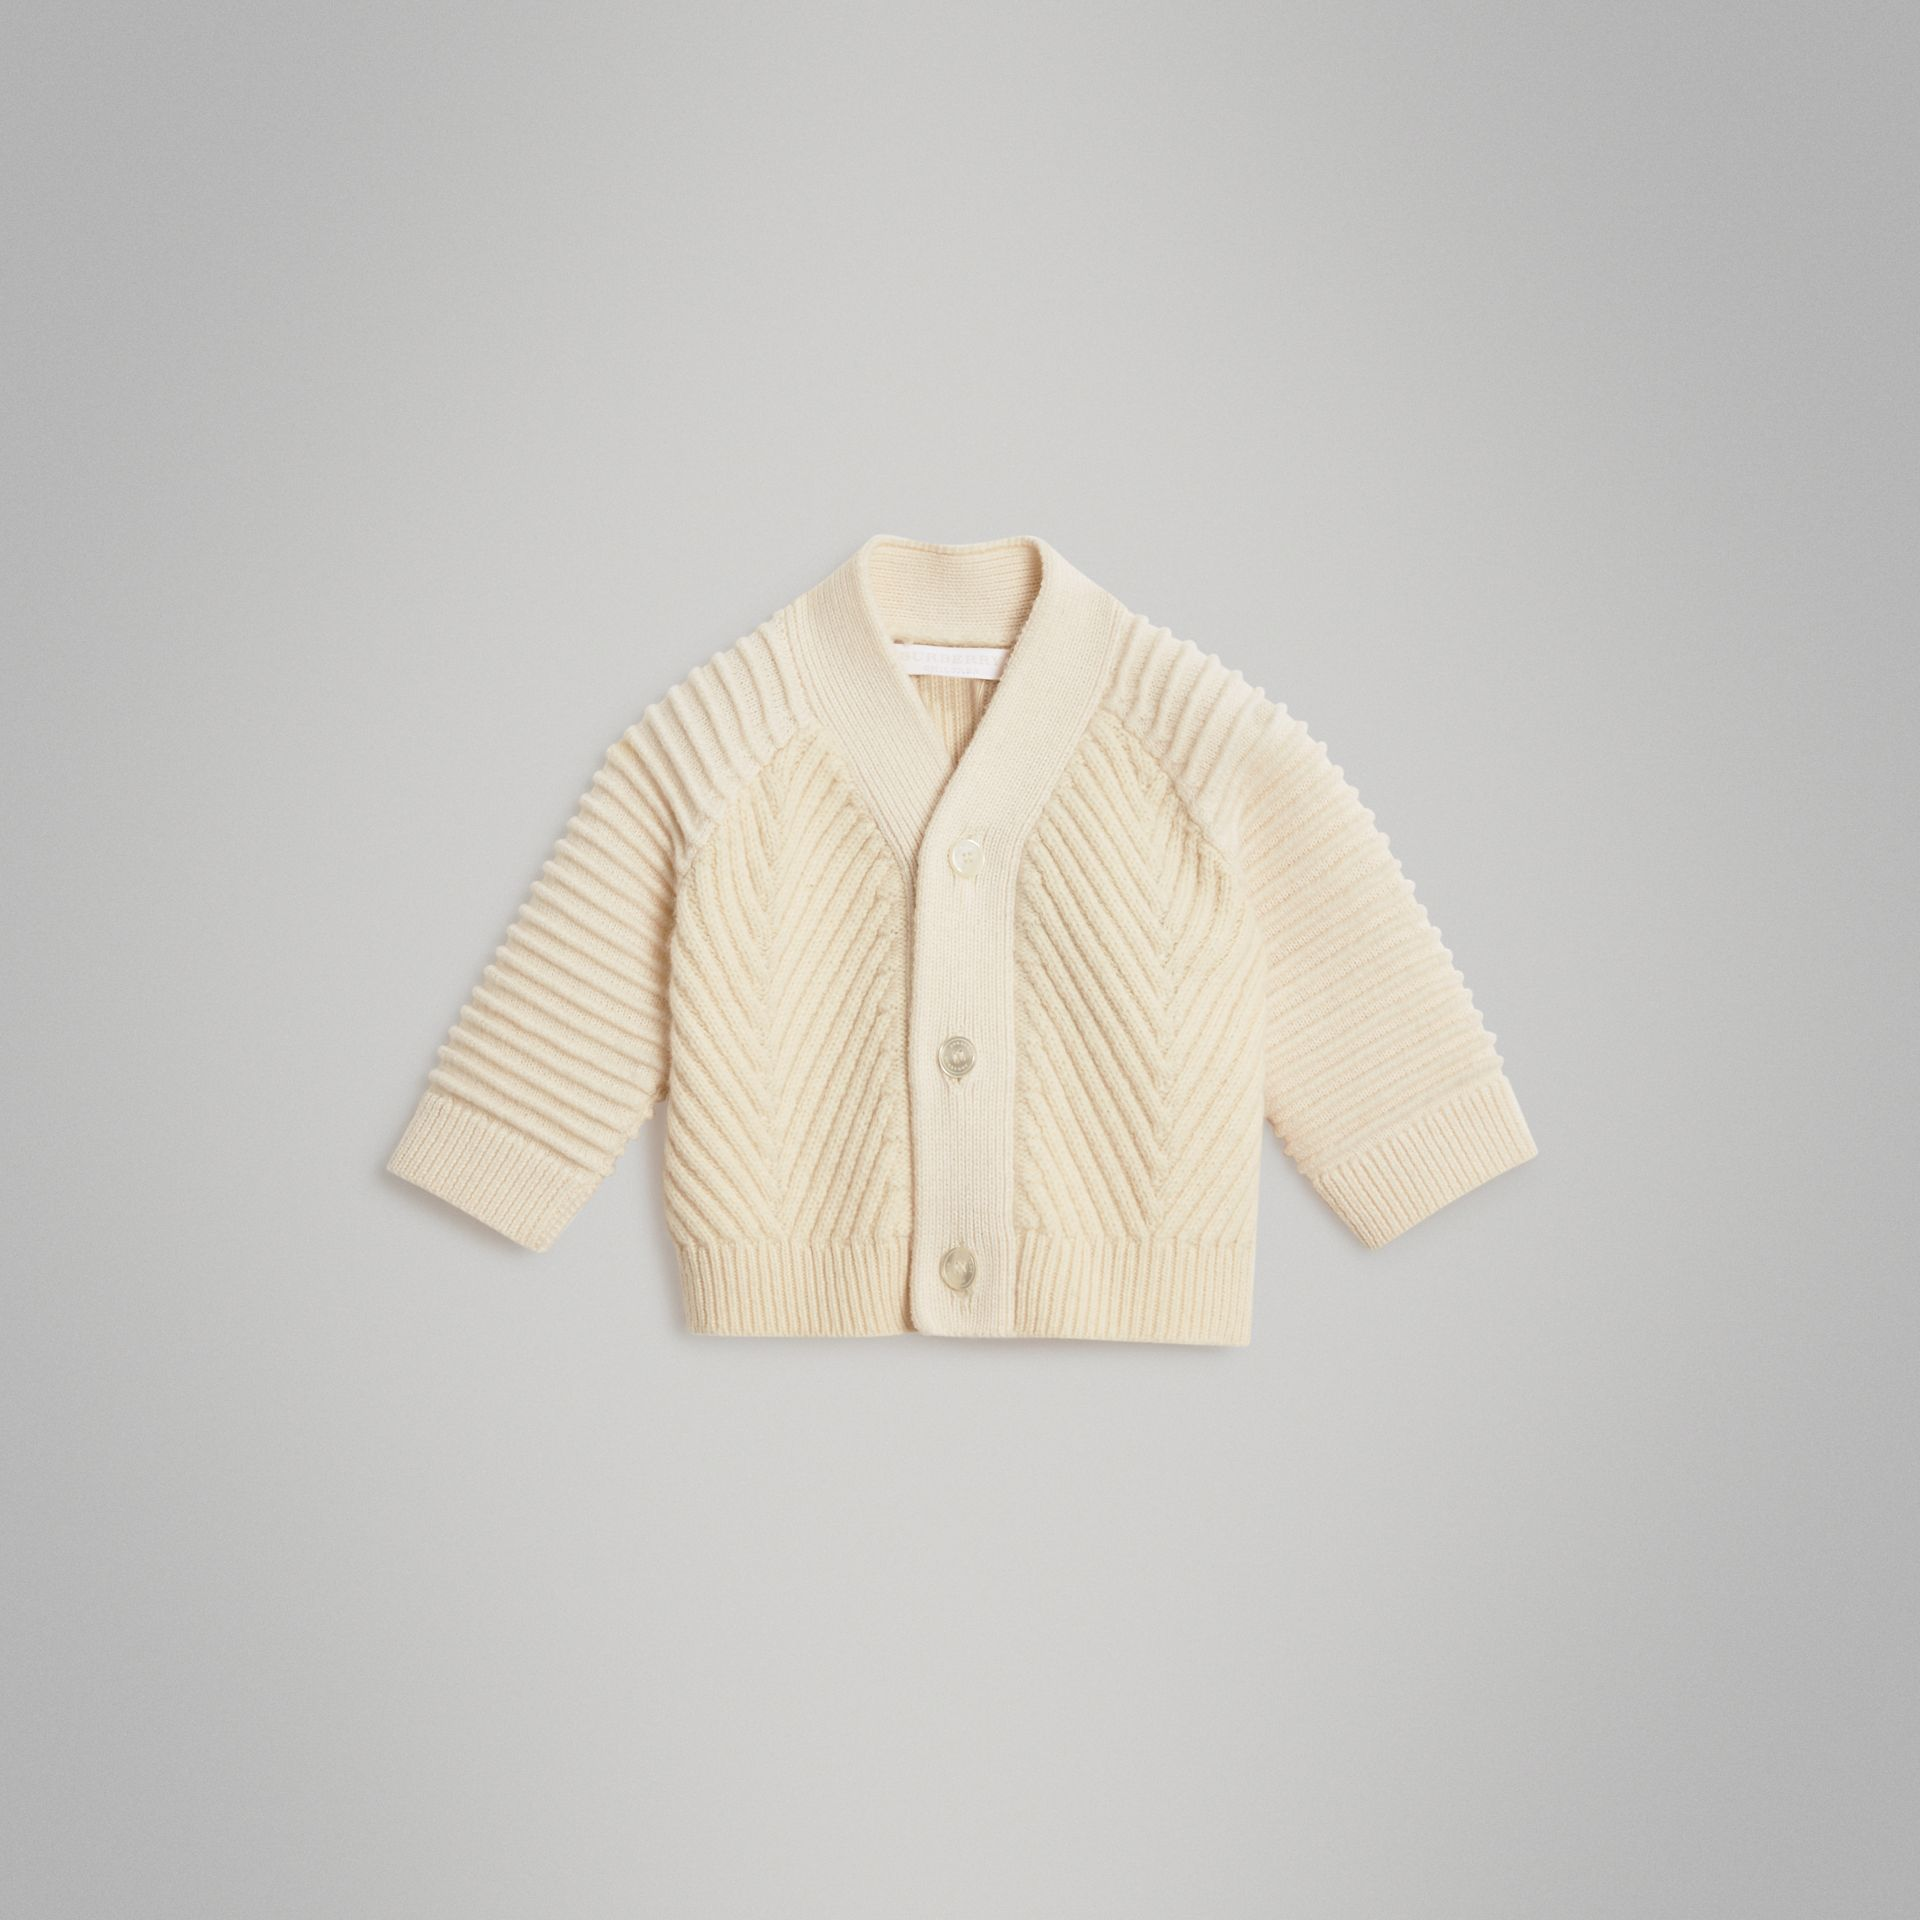 Rib Knit Wool Cashmere Cardigan in Ivory - Children | Burberry Australia - gallery image 0